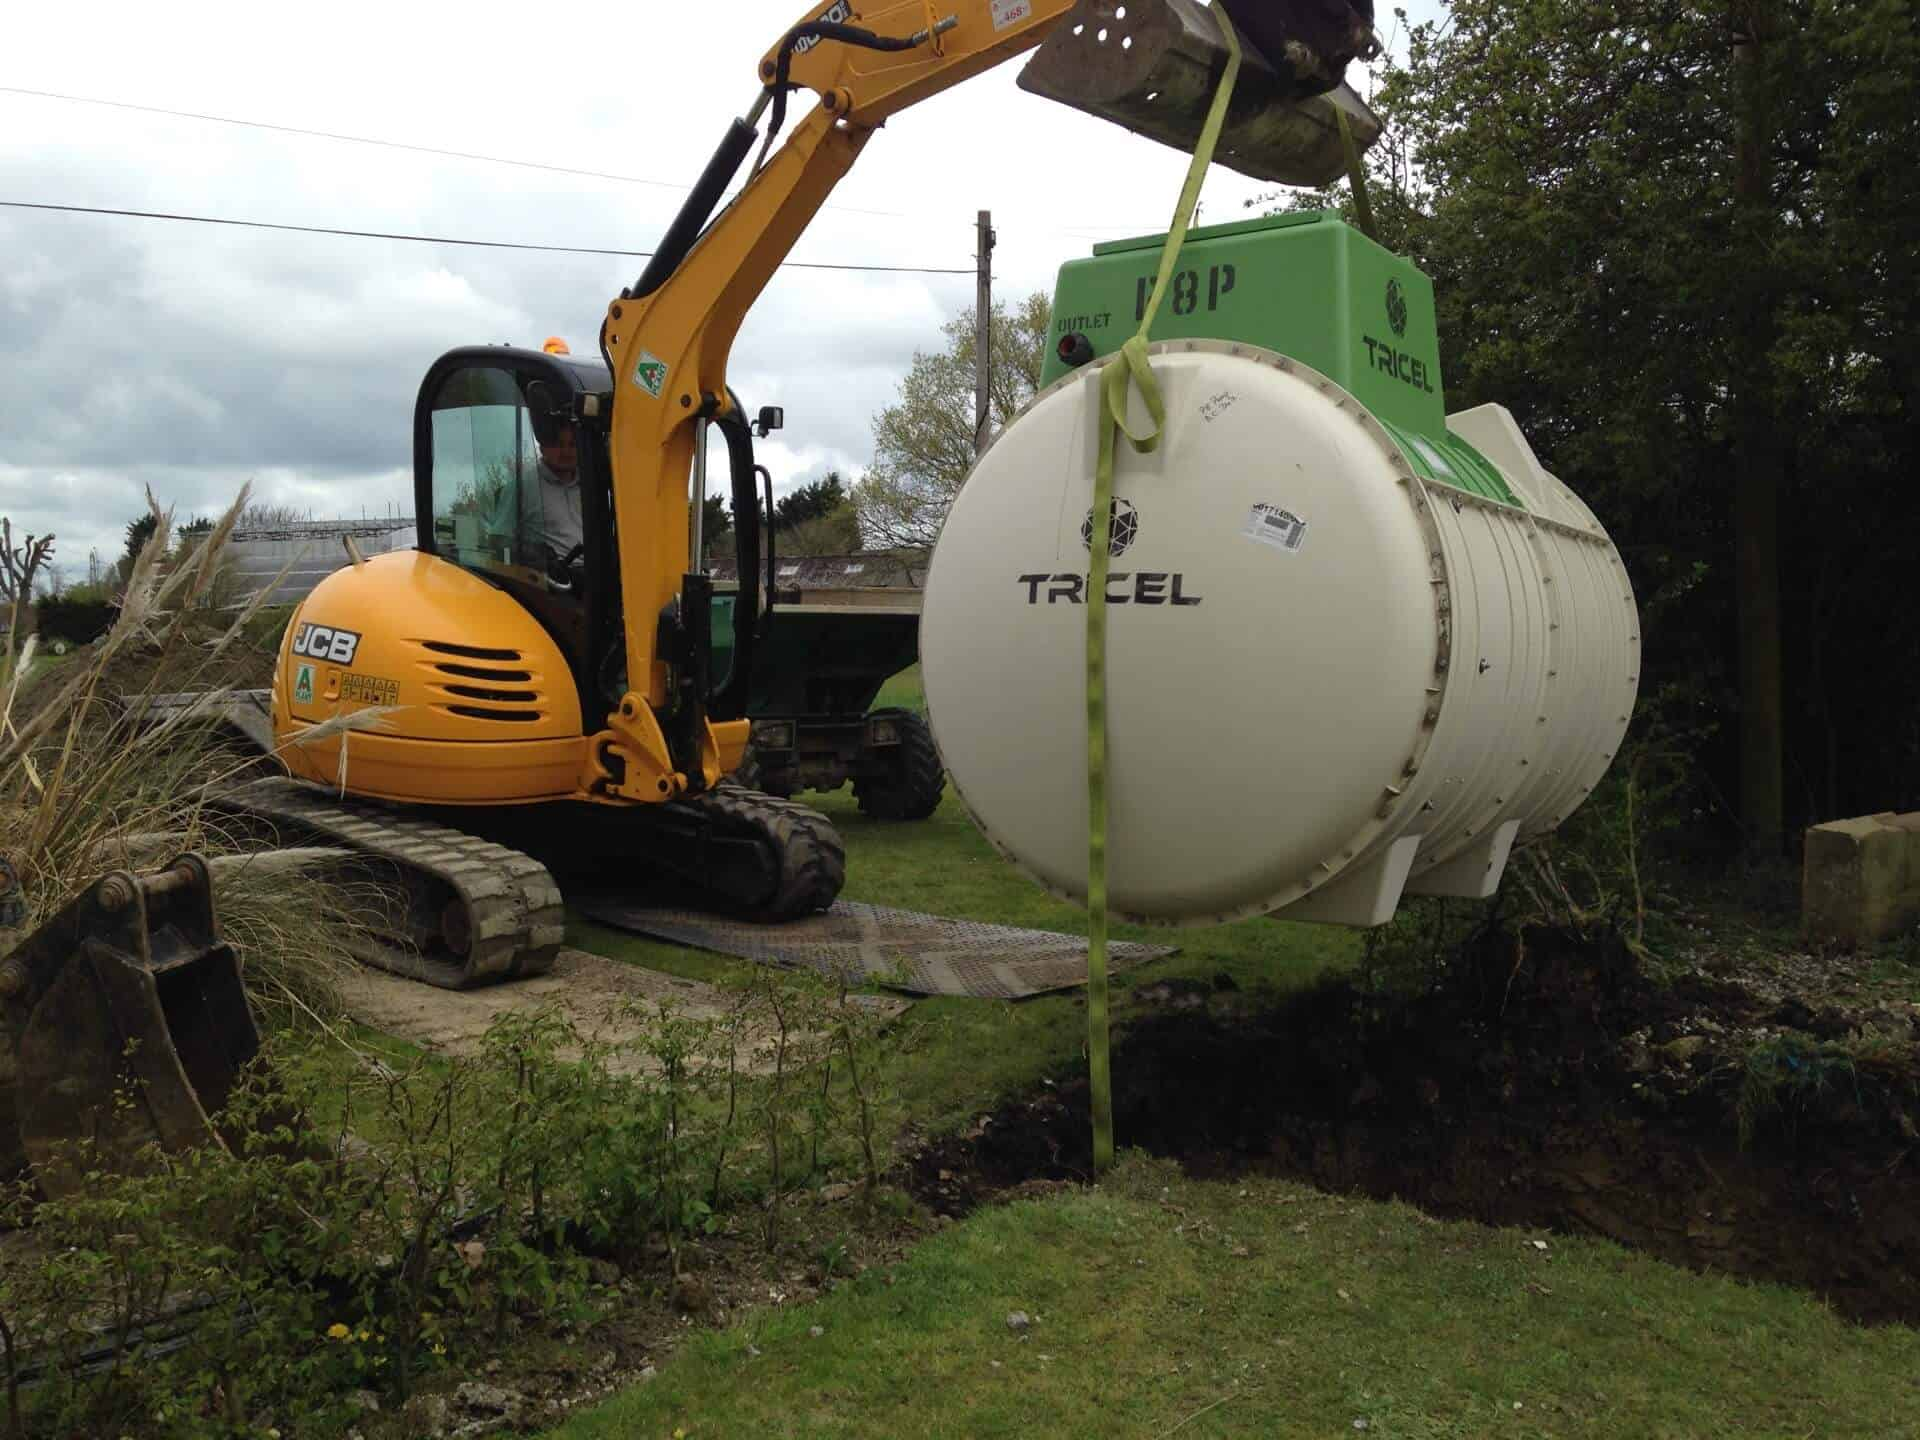 septic-tank-replacement-nj-sewer-services